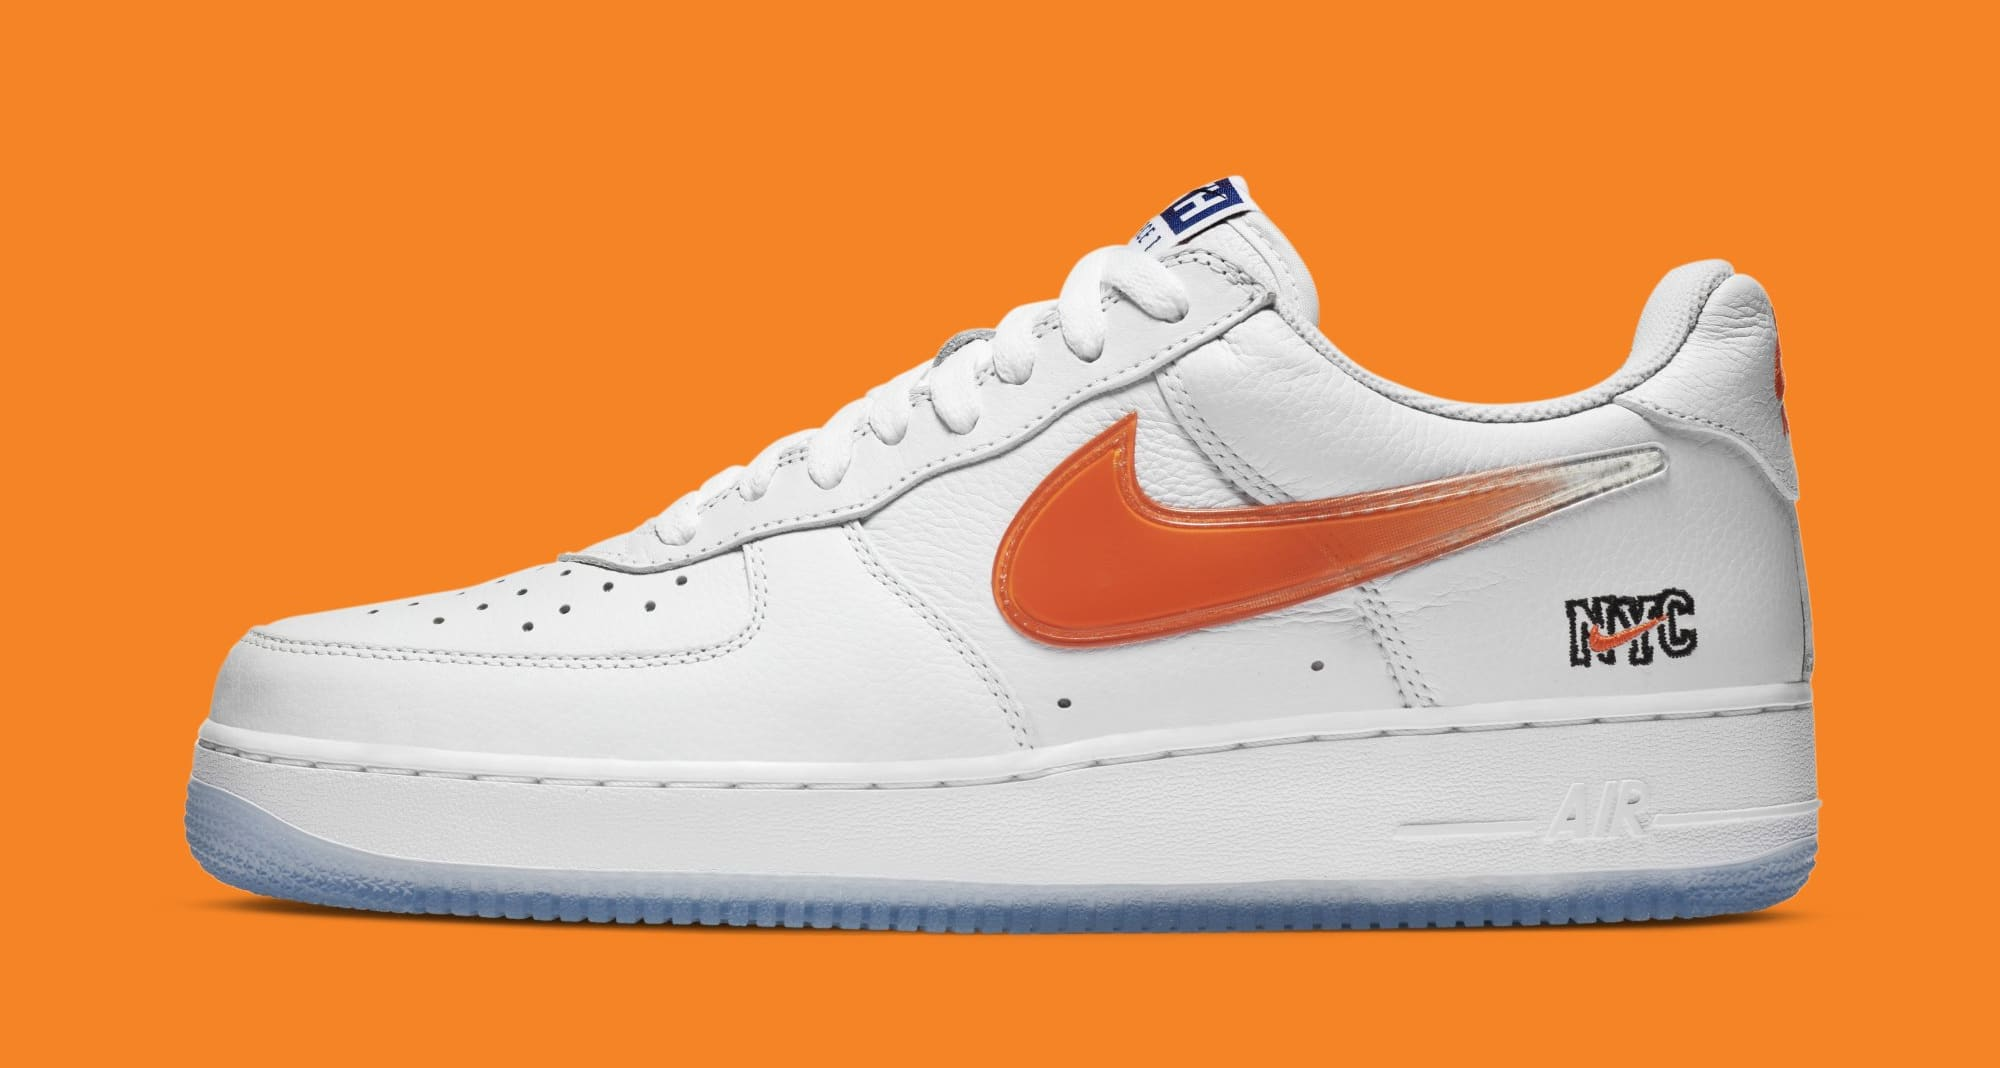 Kith x Nike Air Force 1 Low 'NYC' CZ7928-100 Lateral